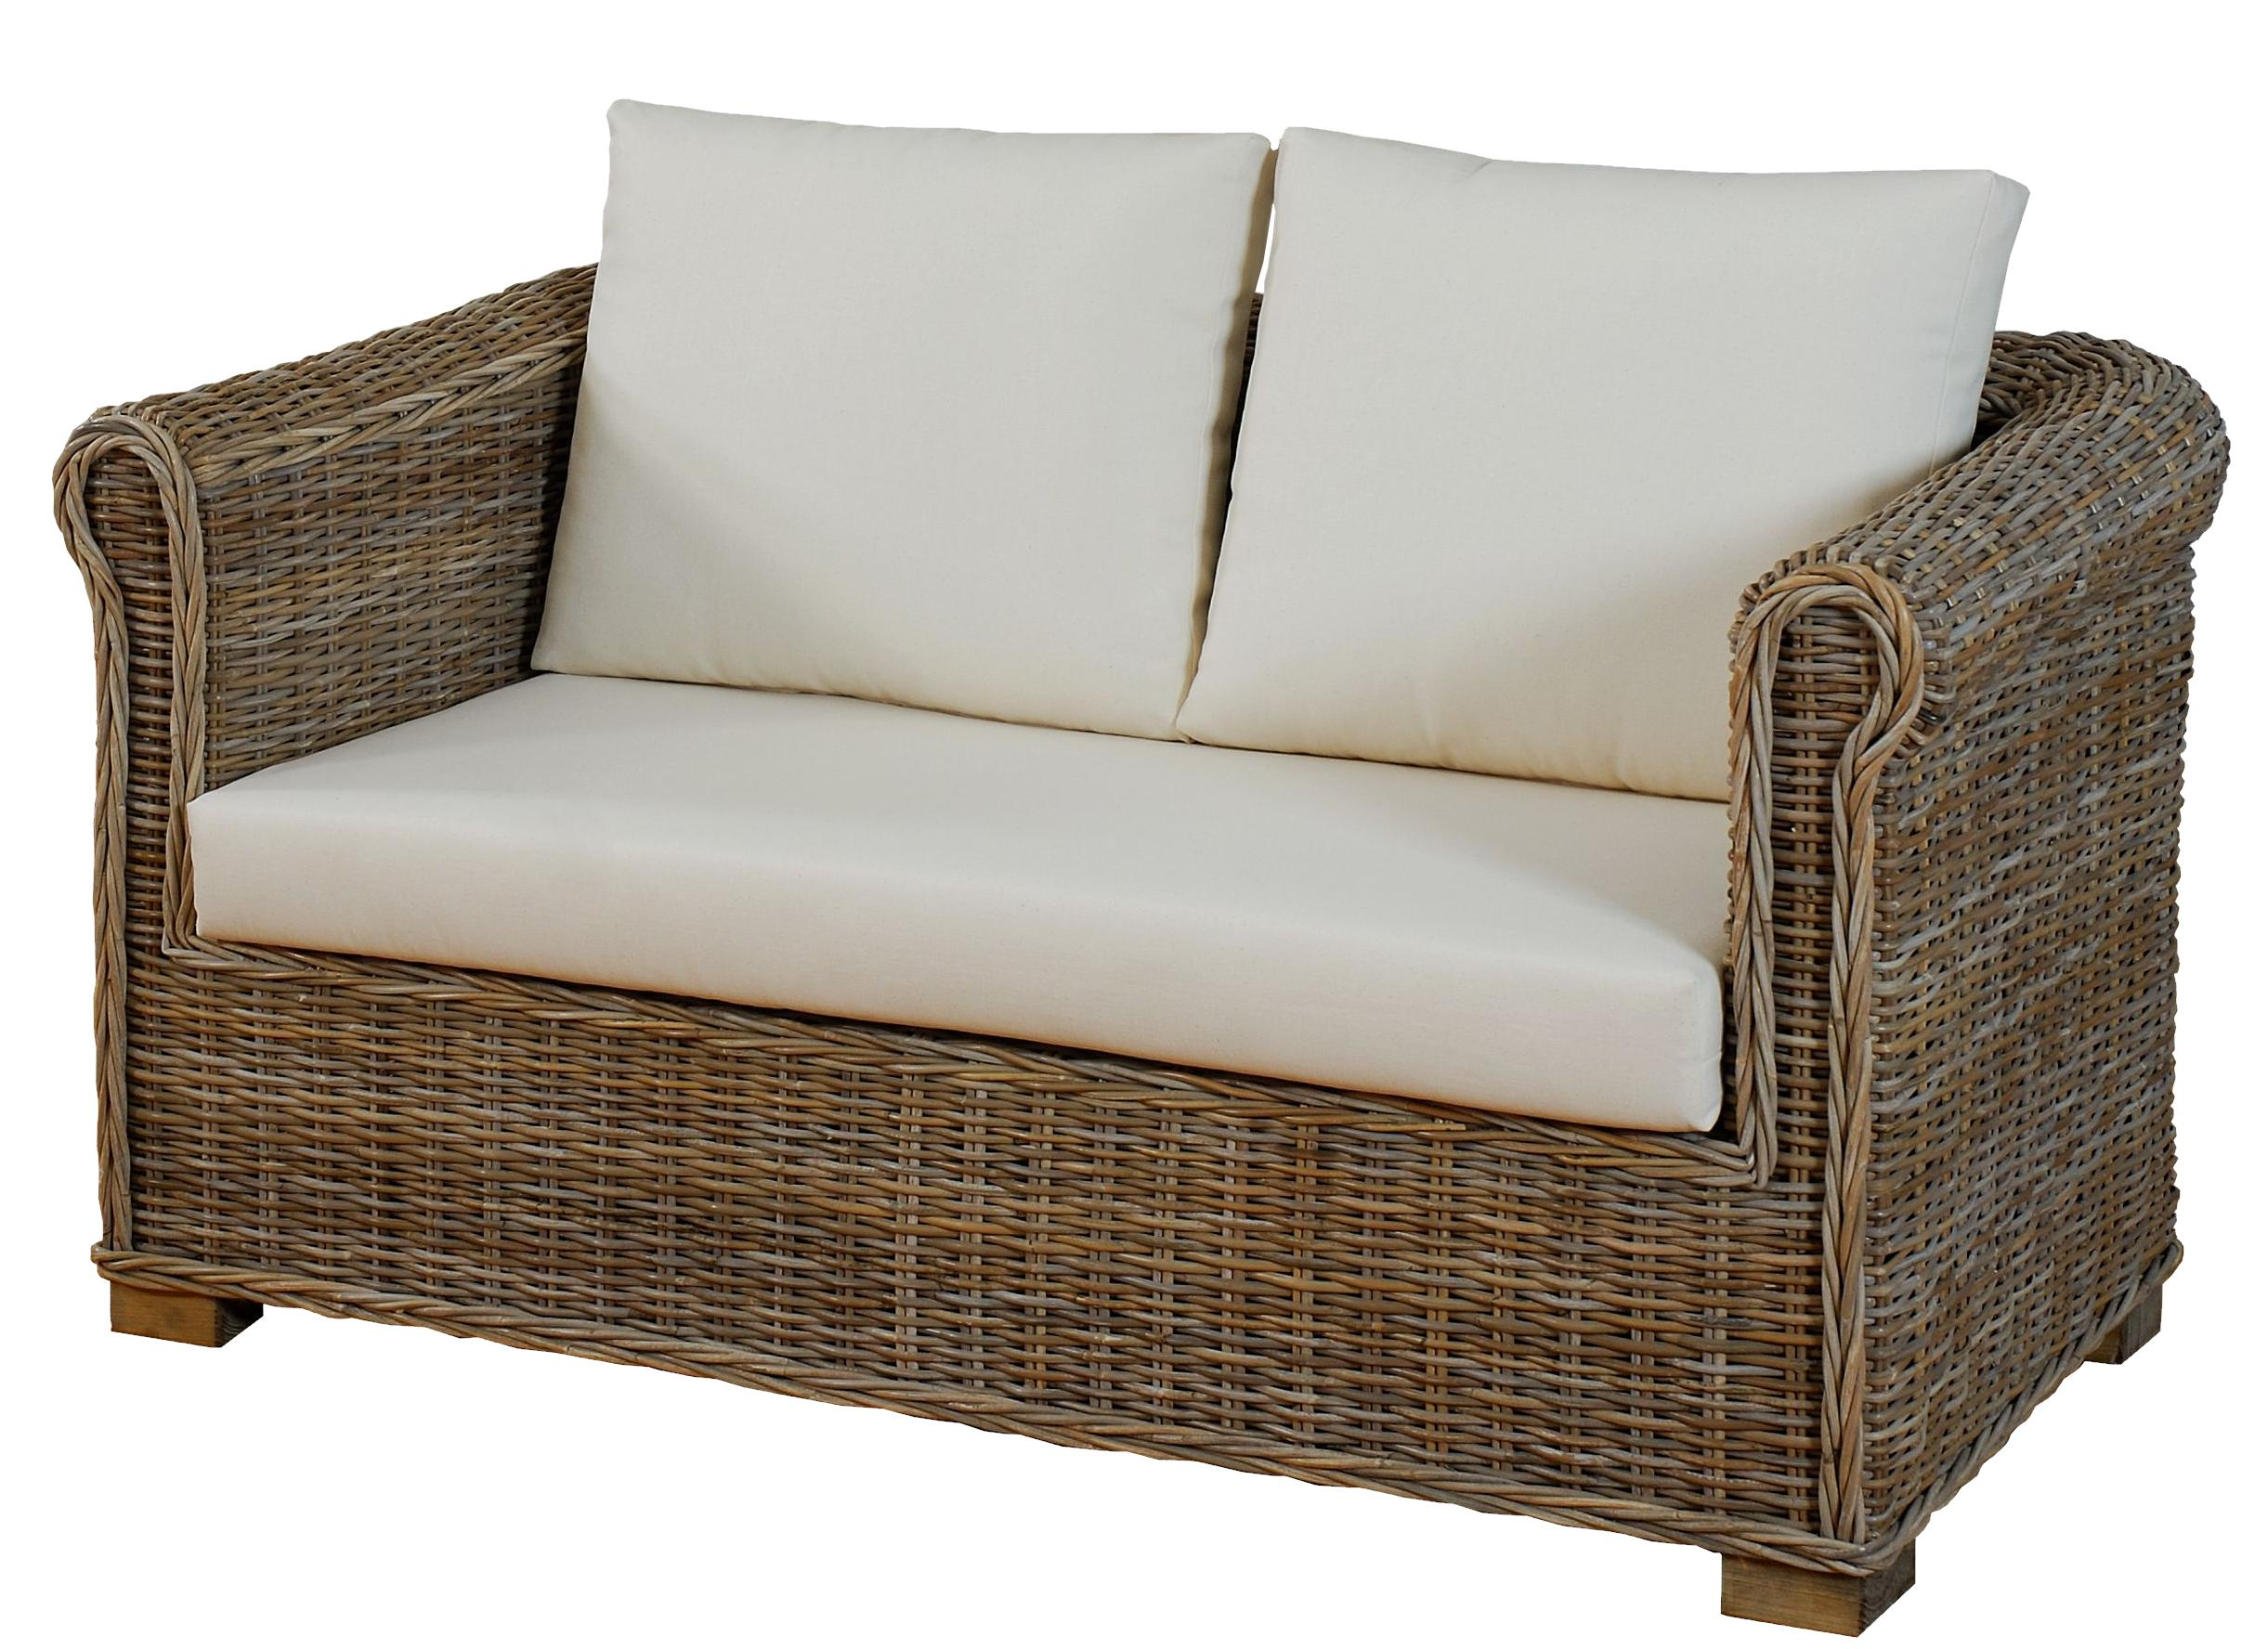 Full Size of Rattan Sofa Set Mauritius Cushions Replacements Used For Sale Outdoor Table Dining Singapore Furniture Nizza 2er Rattansofas Sofas Sessel Online Kaufen Sofa Rattan Sofa